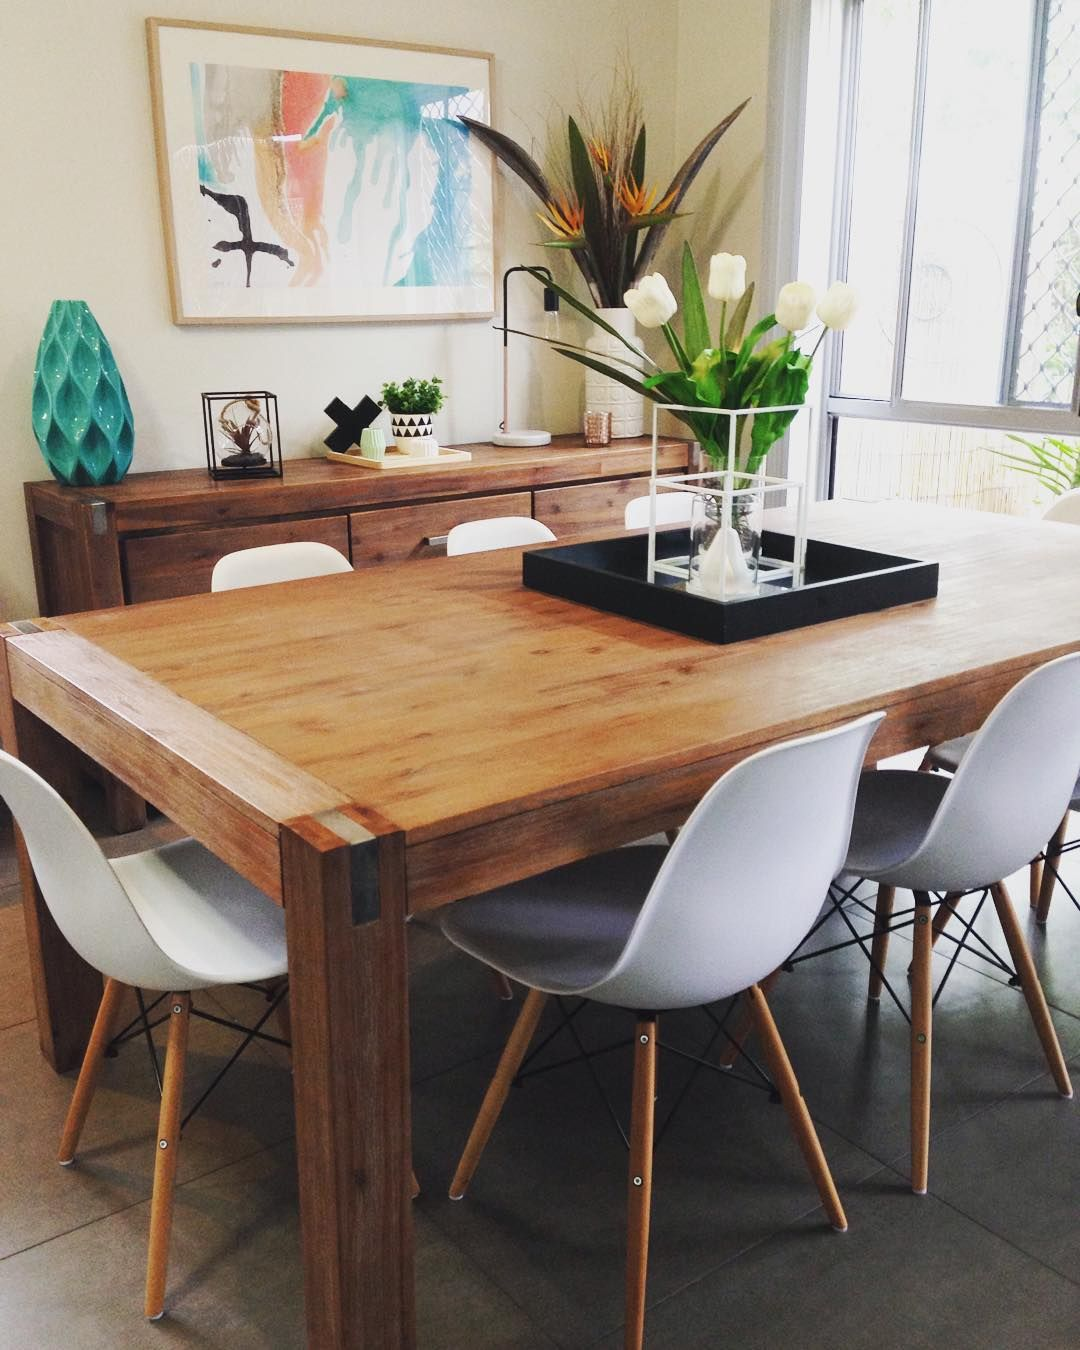 I Would Like To Make My Living Room Dining Room: Here Is Another Angle Of My Silverwood Dining Table With